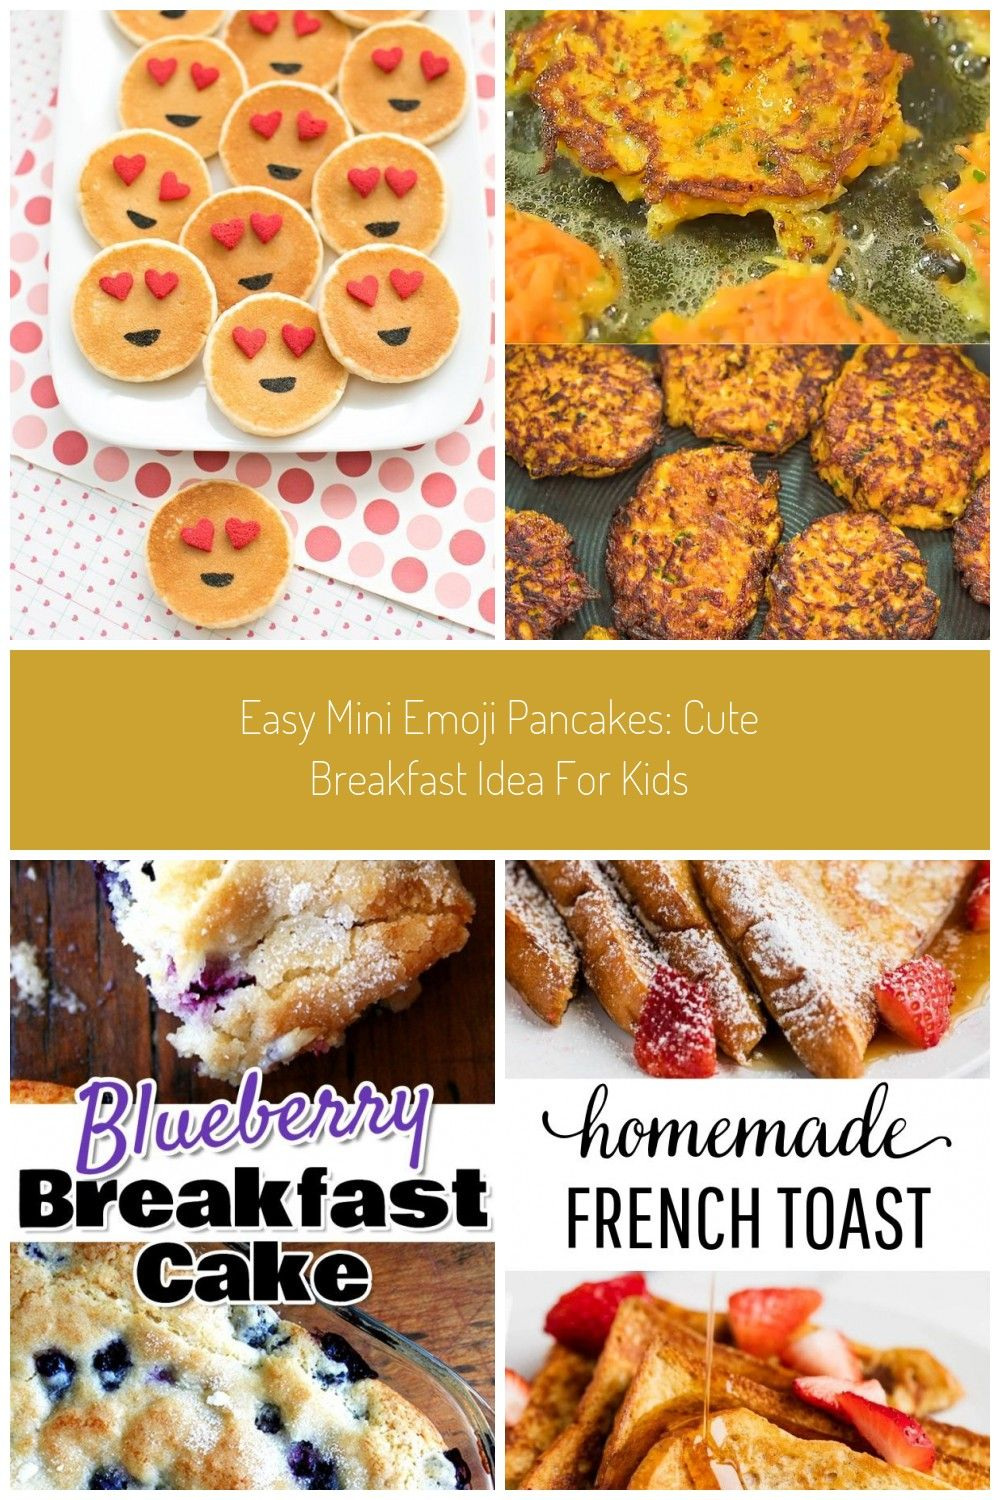 Easy Mini Emoji Pancakes Cute Breakfast Idea For Kids Breakfast Ideas Easy Brunch Food Easy Mini Emoji Pancakes Cute Breakfast Idea For Kids